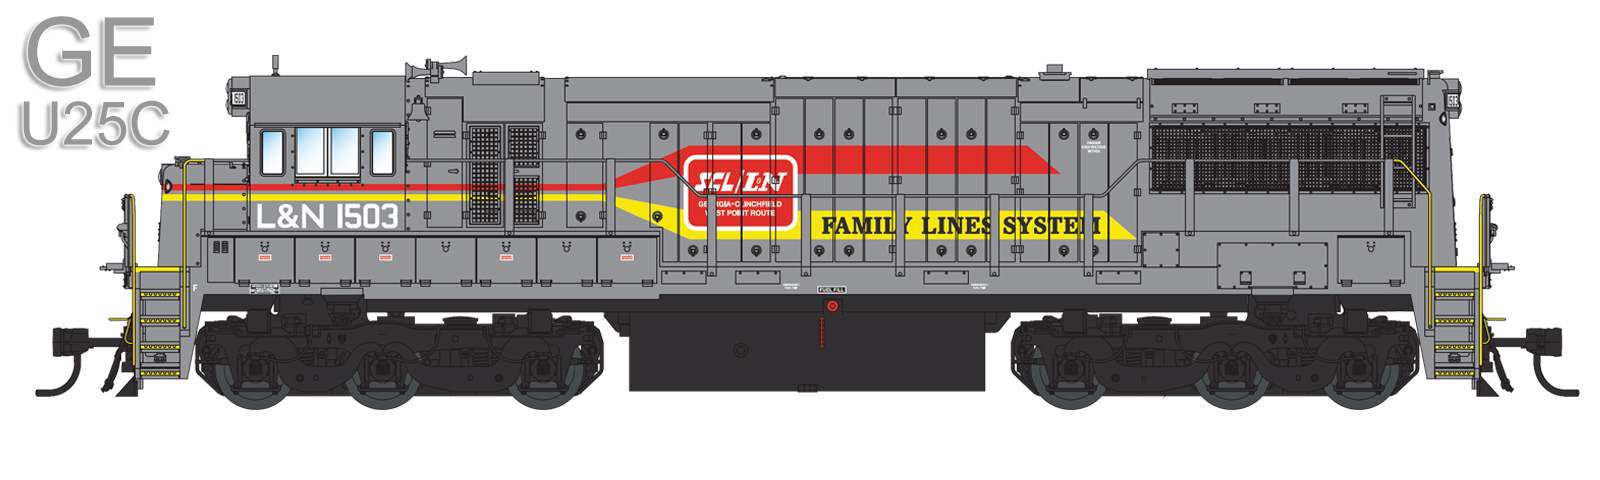 SCL/LN Family Lines (Coming Soon): 1503, 1505